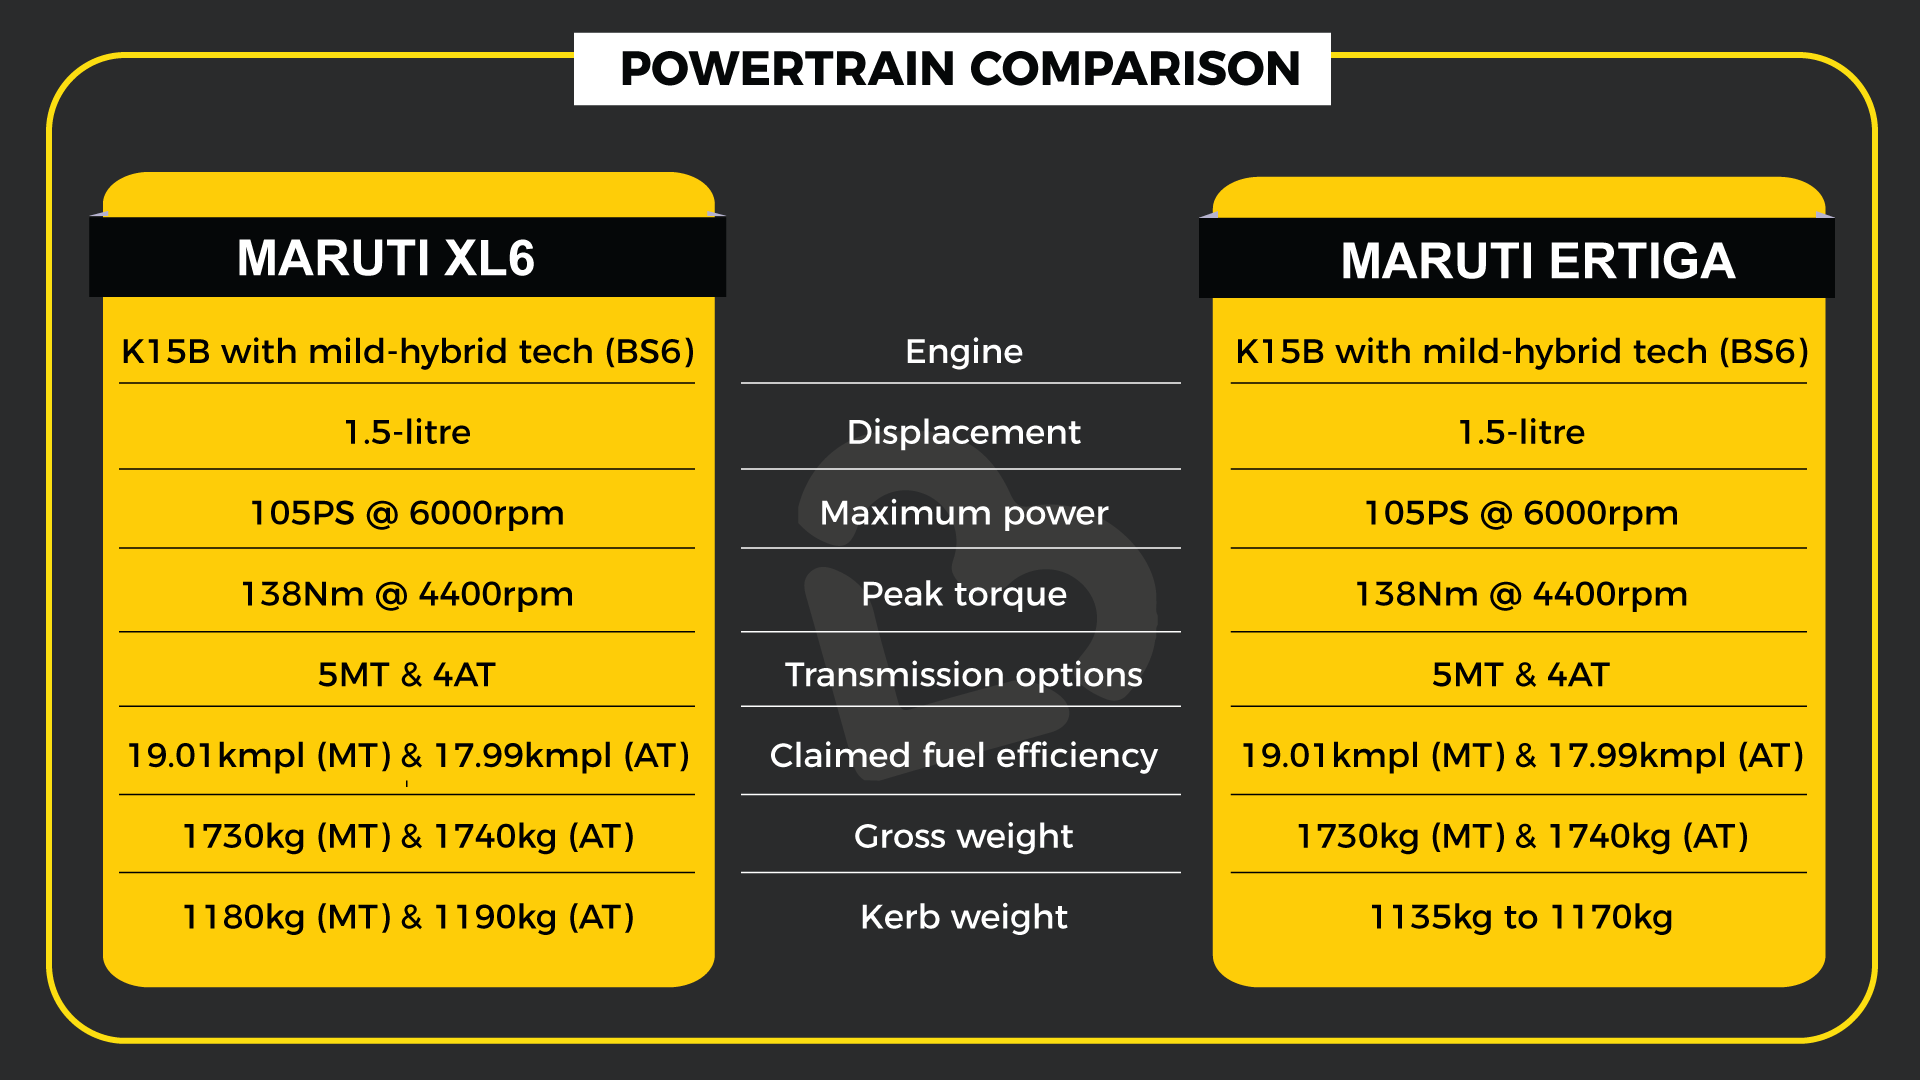 Powertrain Comparison